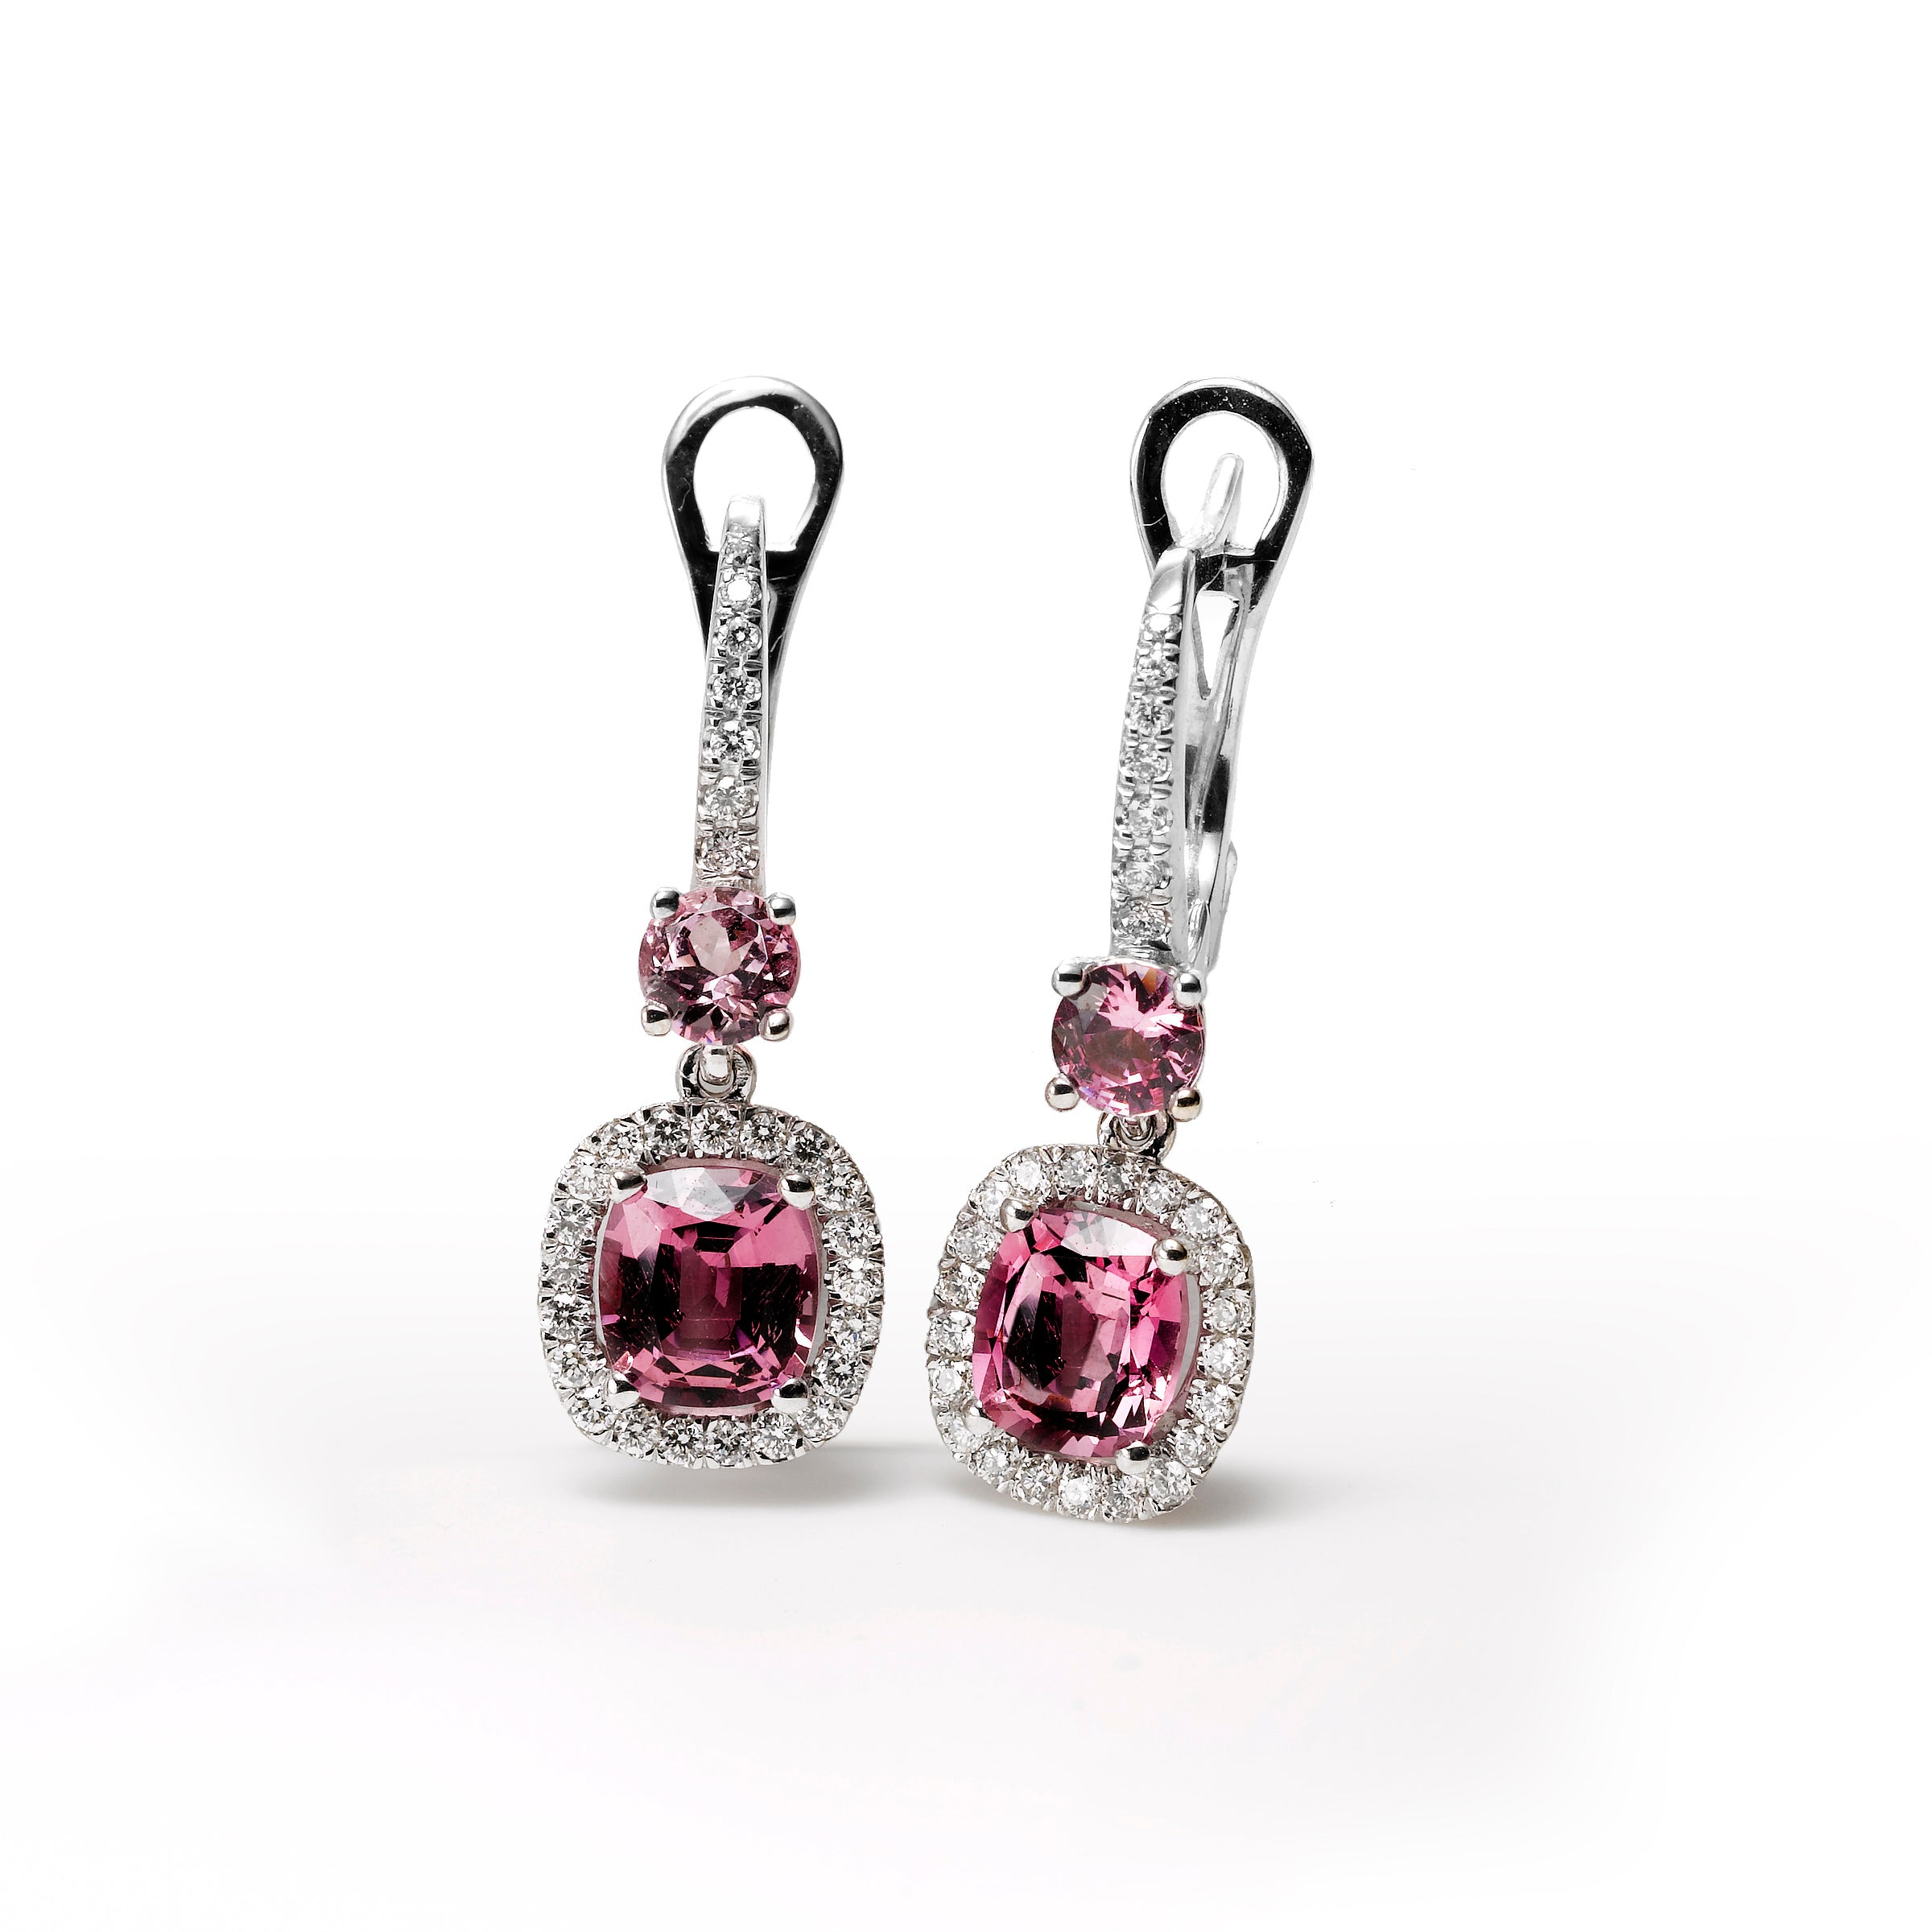 Oval Pink Spinel and Diamond Dangle Earrings, 18K White Gold